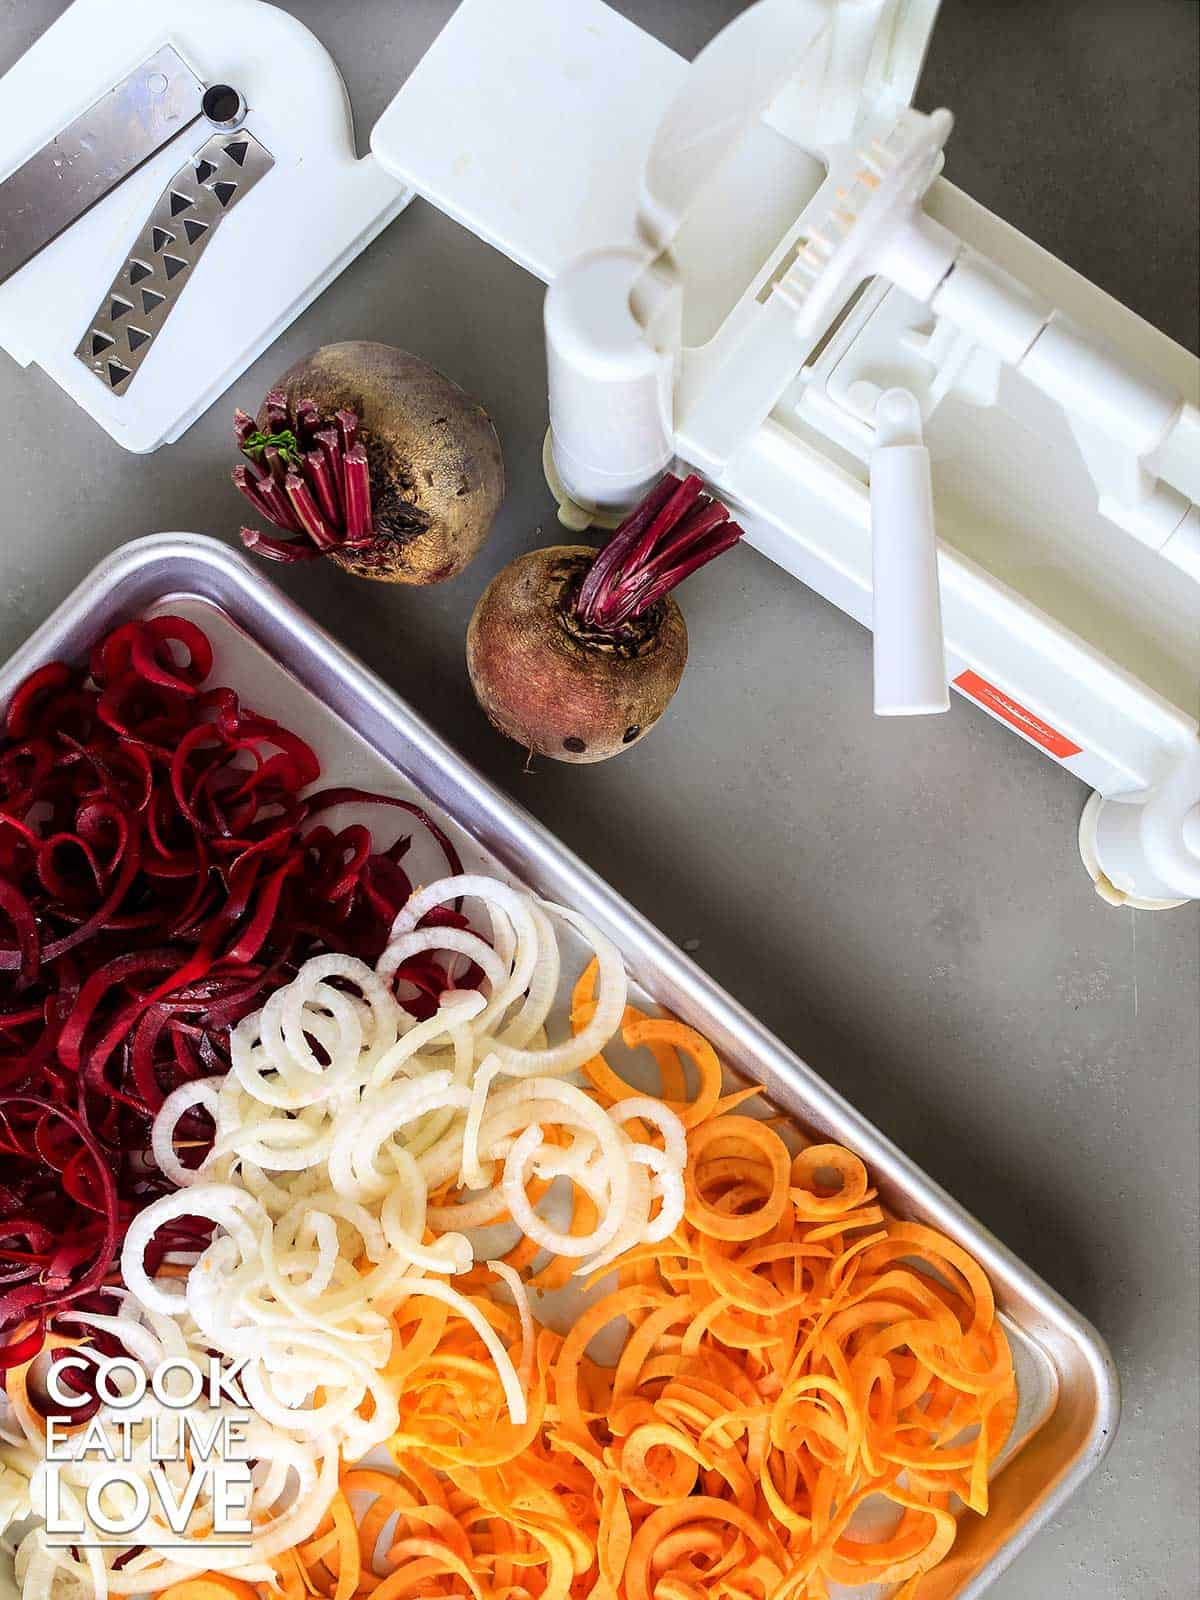 Spiralized veggies on a baking pan with spiralizer at top of picture.